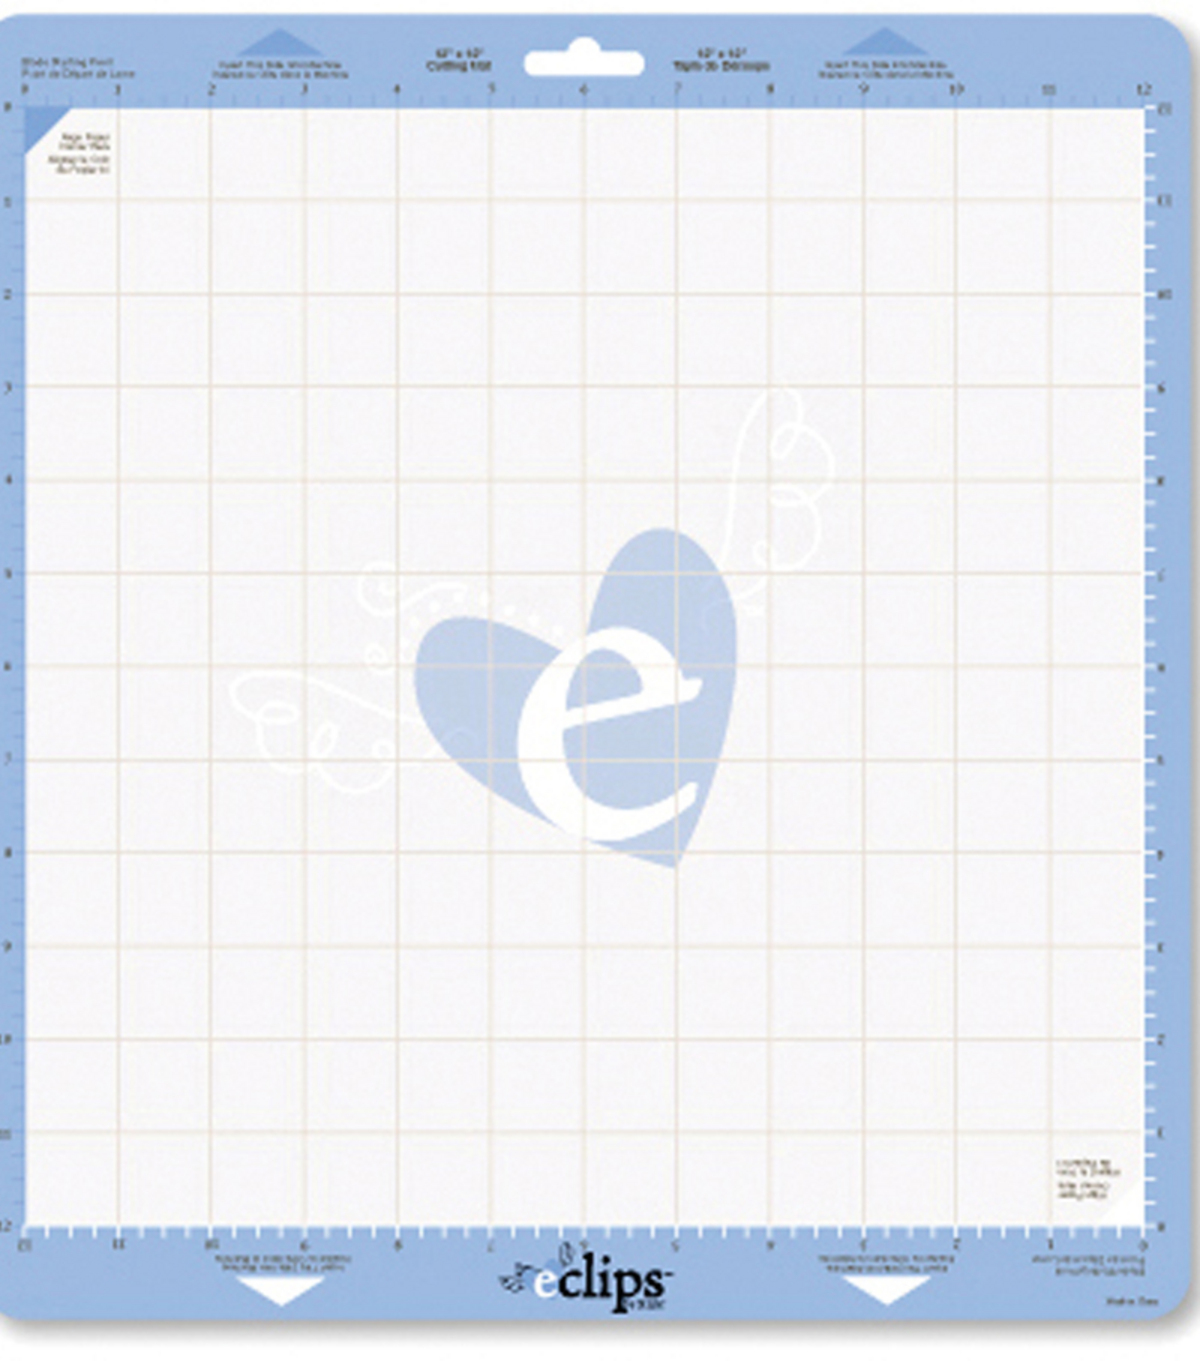 Sizzix eclips Cutting Mat 12\u0022X12\u0022 2Pk-Includes Metric Measurements